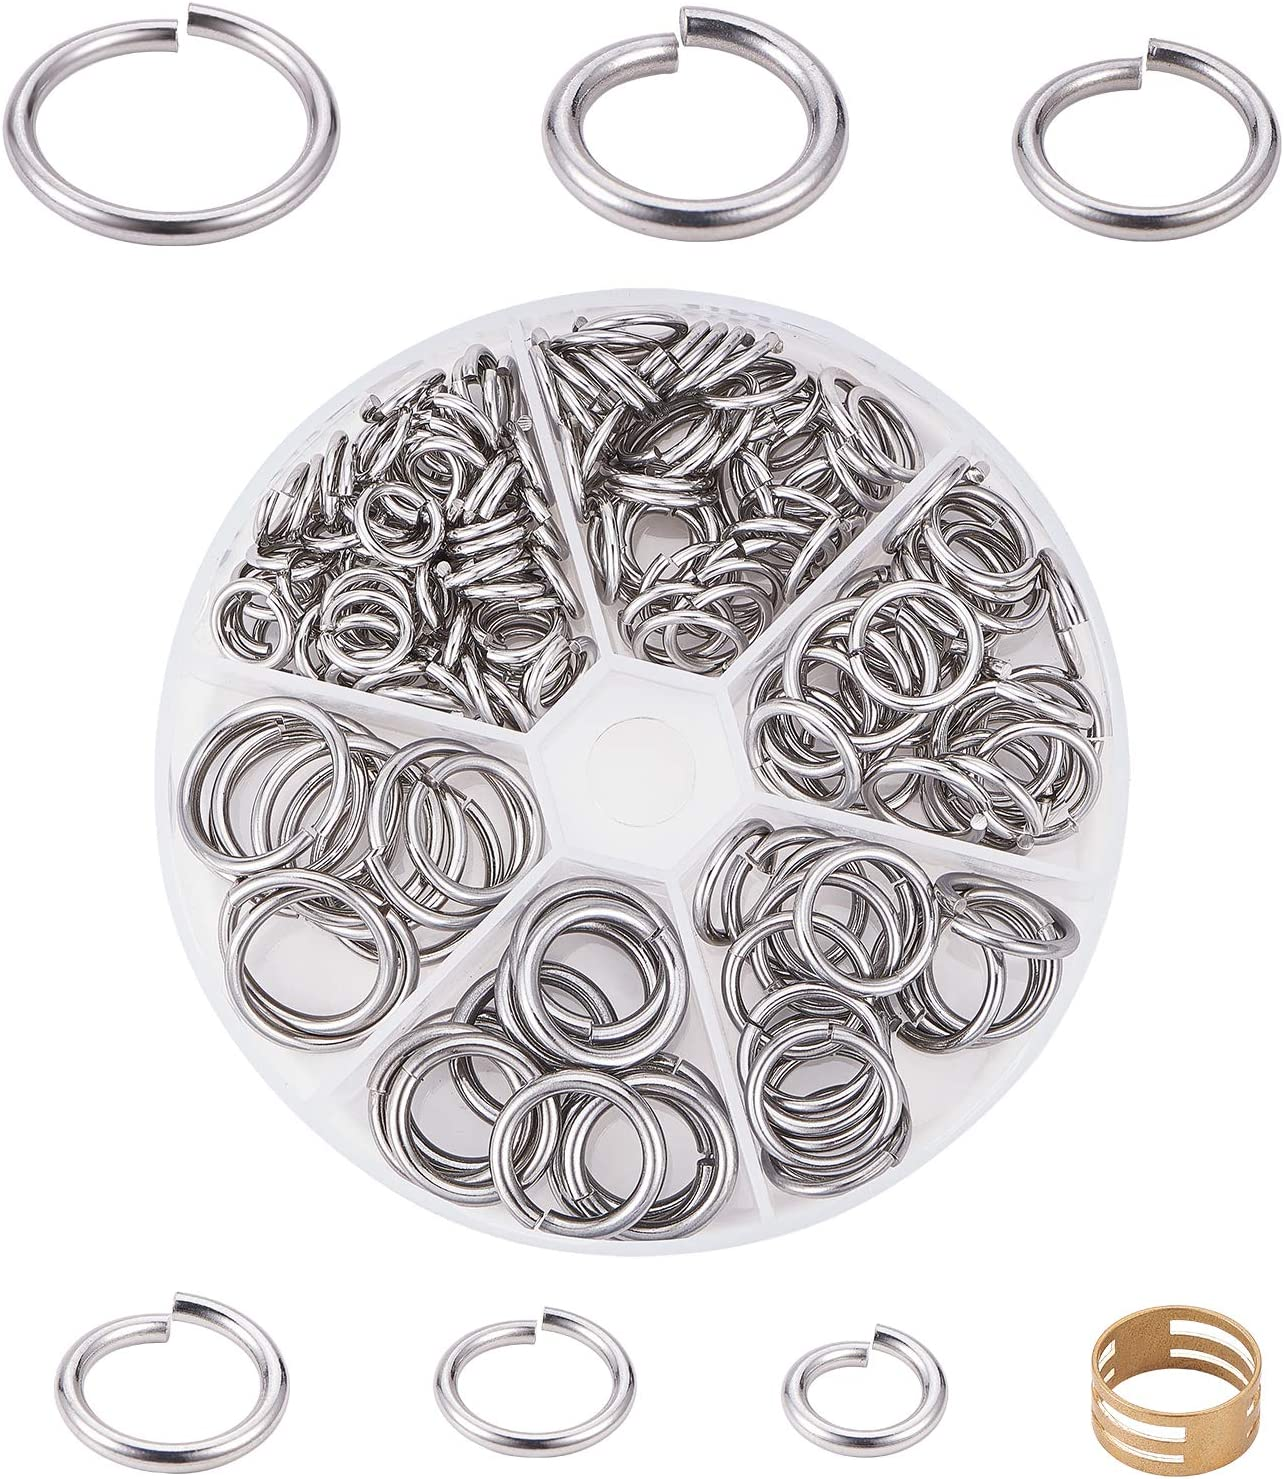 UNICRAFTALE About 180pcs 6 OFFer Sizes 10 12 Max 41% OFF 14 18 Jumps 16 20mm Rings